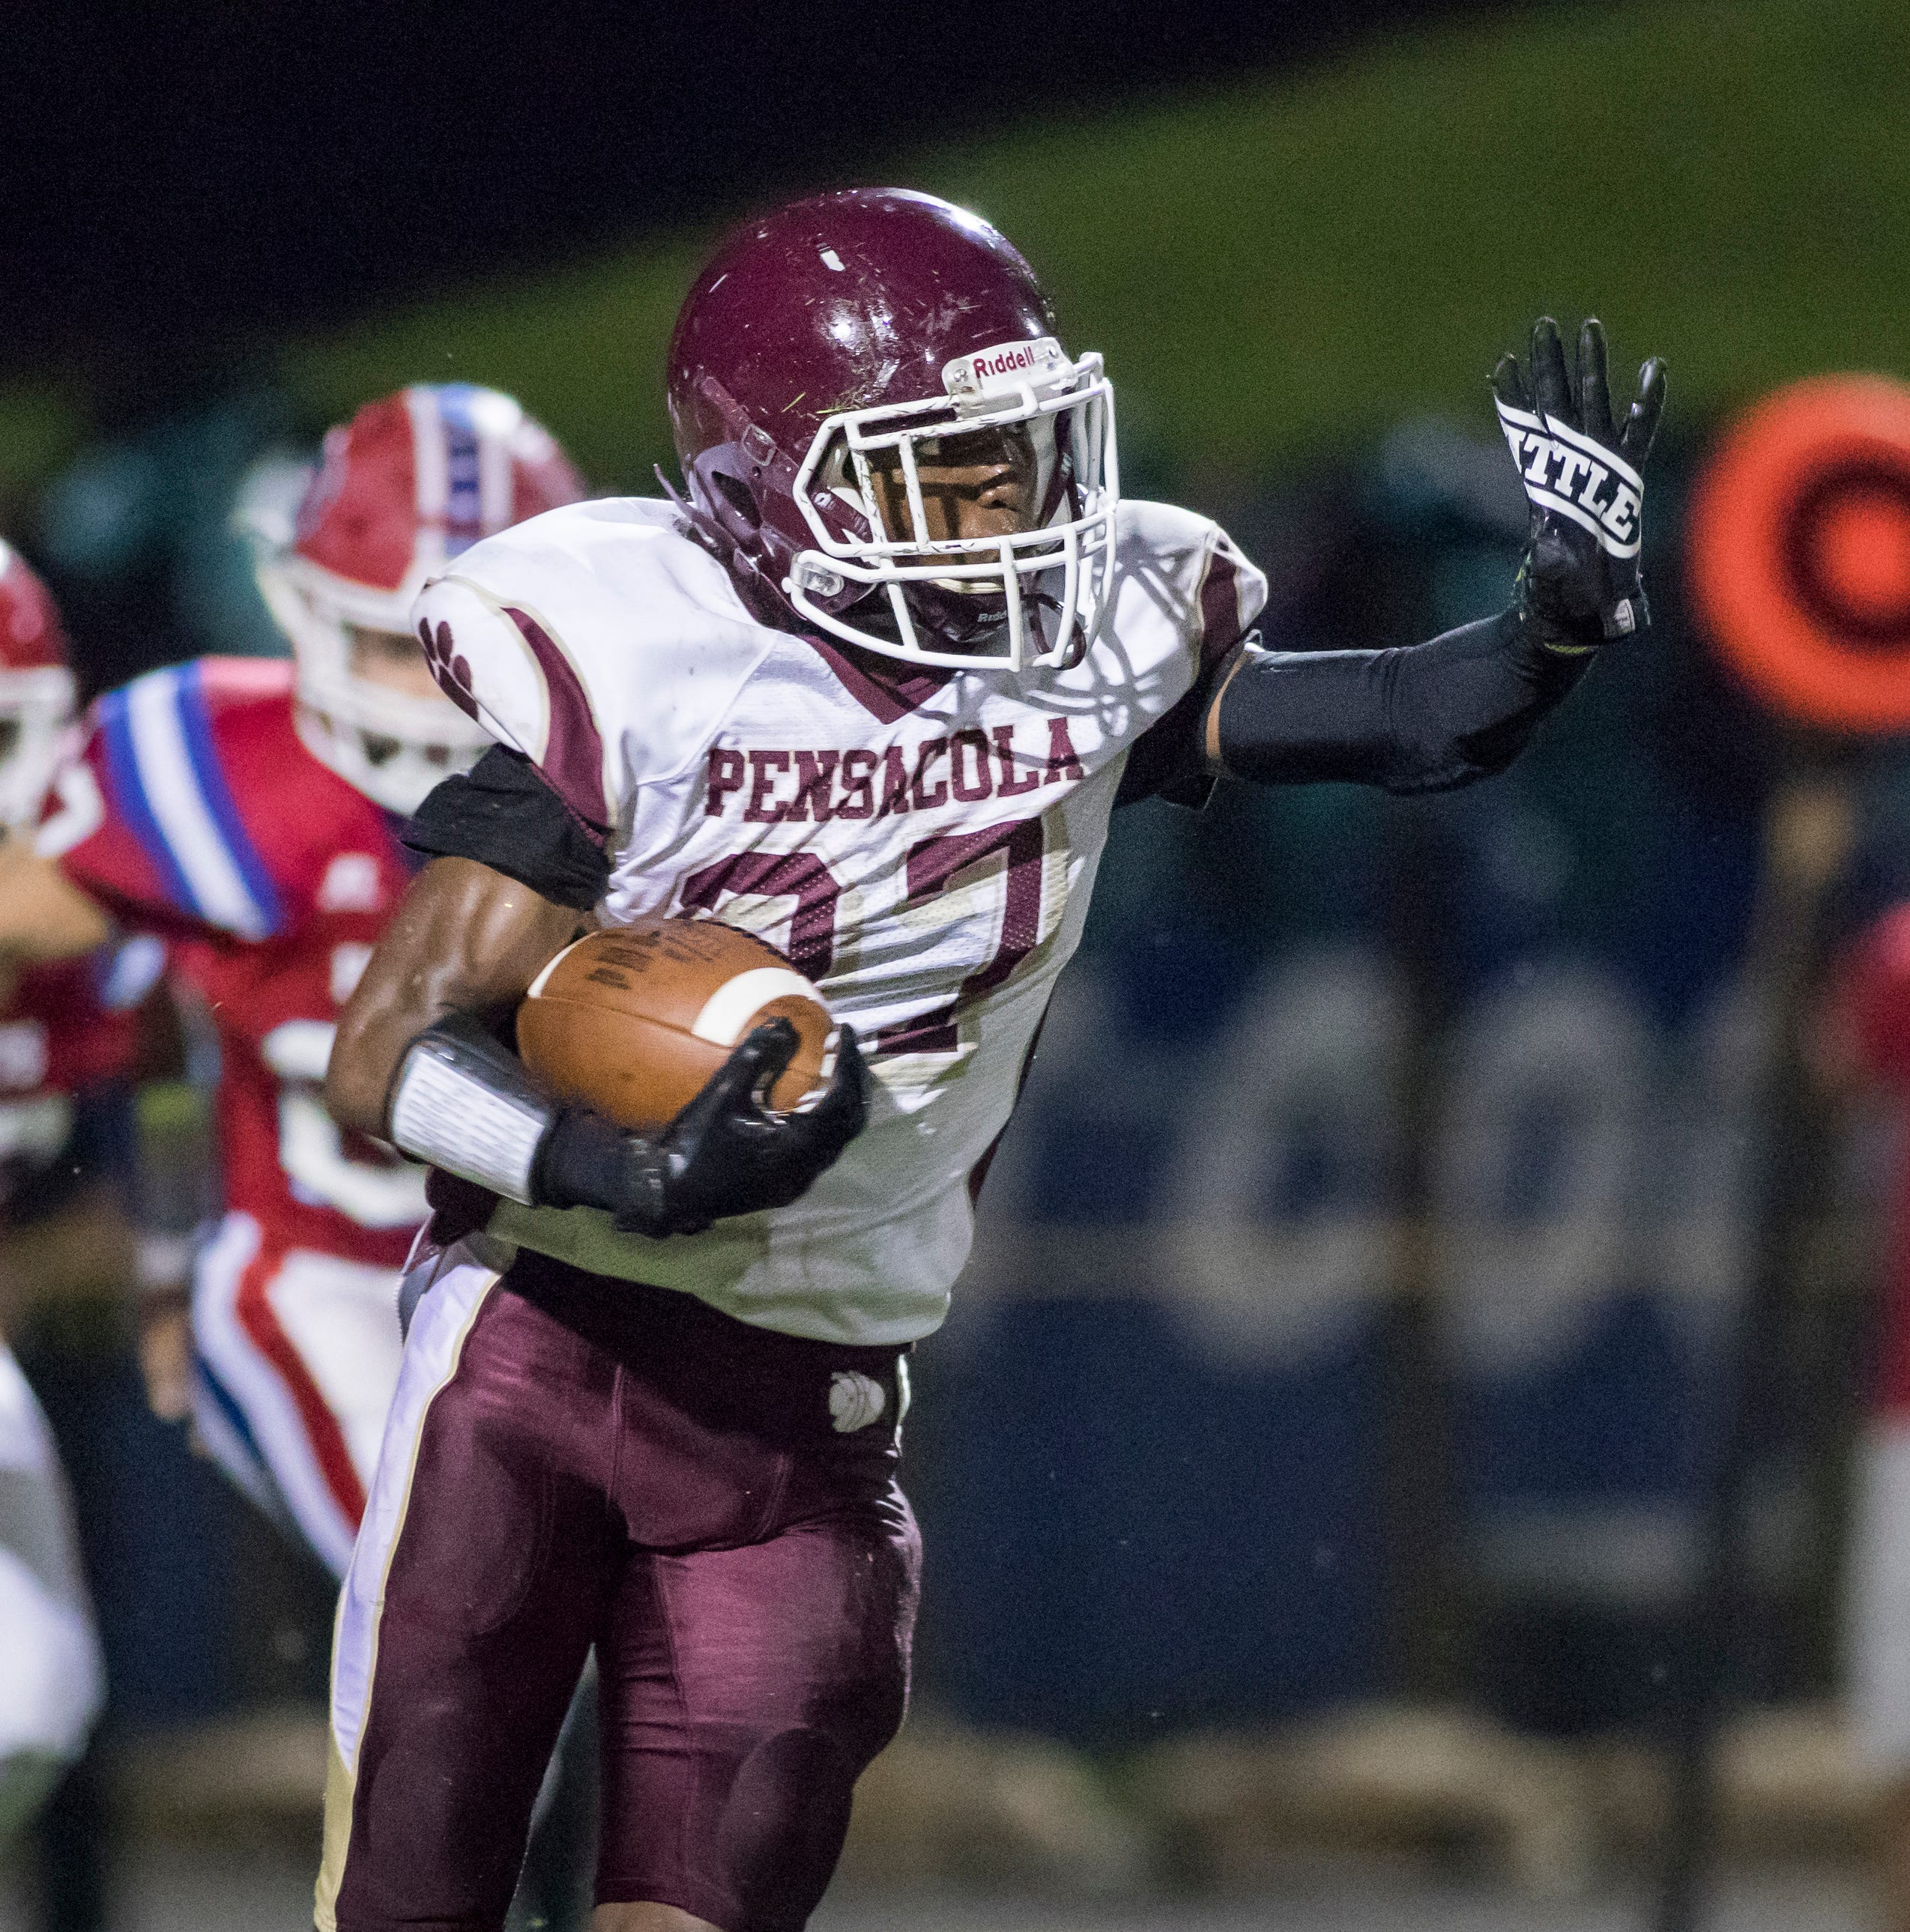 Pensacola High to play Mosley on Saturday, moves West Florida game back to Week 10